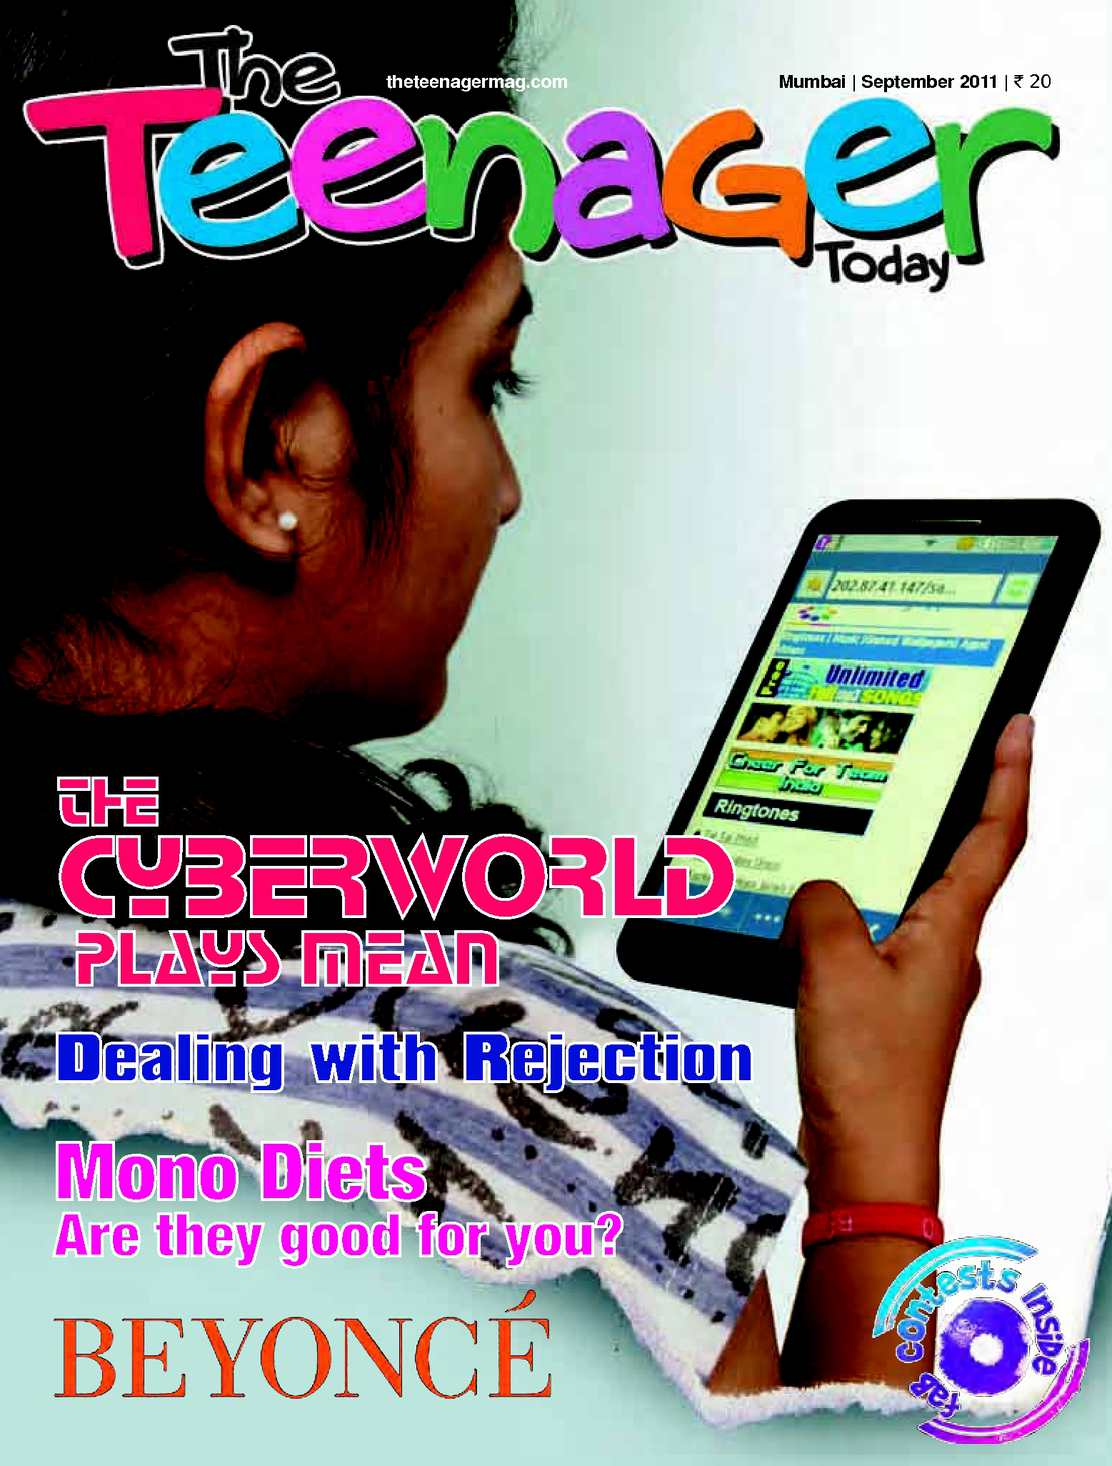 Calamo The Teenager Today I September 2011 Cyberworld Plays Possessedhand Will Move Your Hand For You Mean